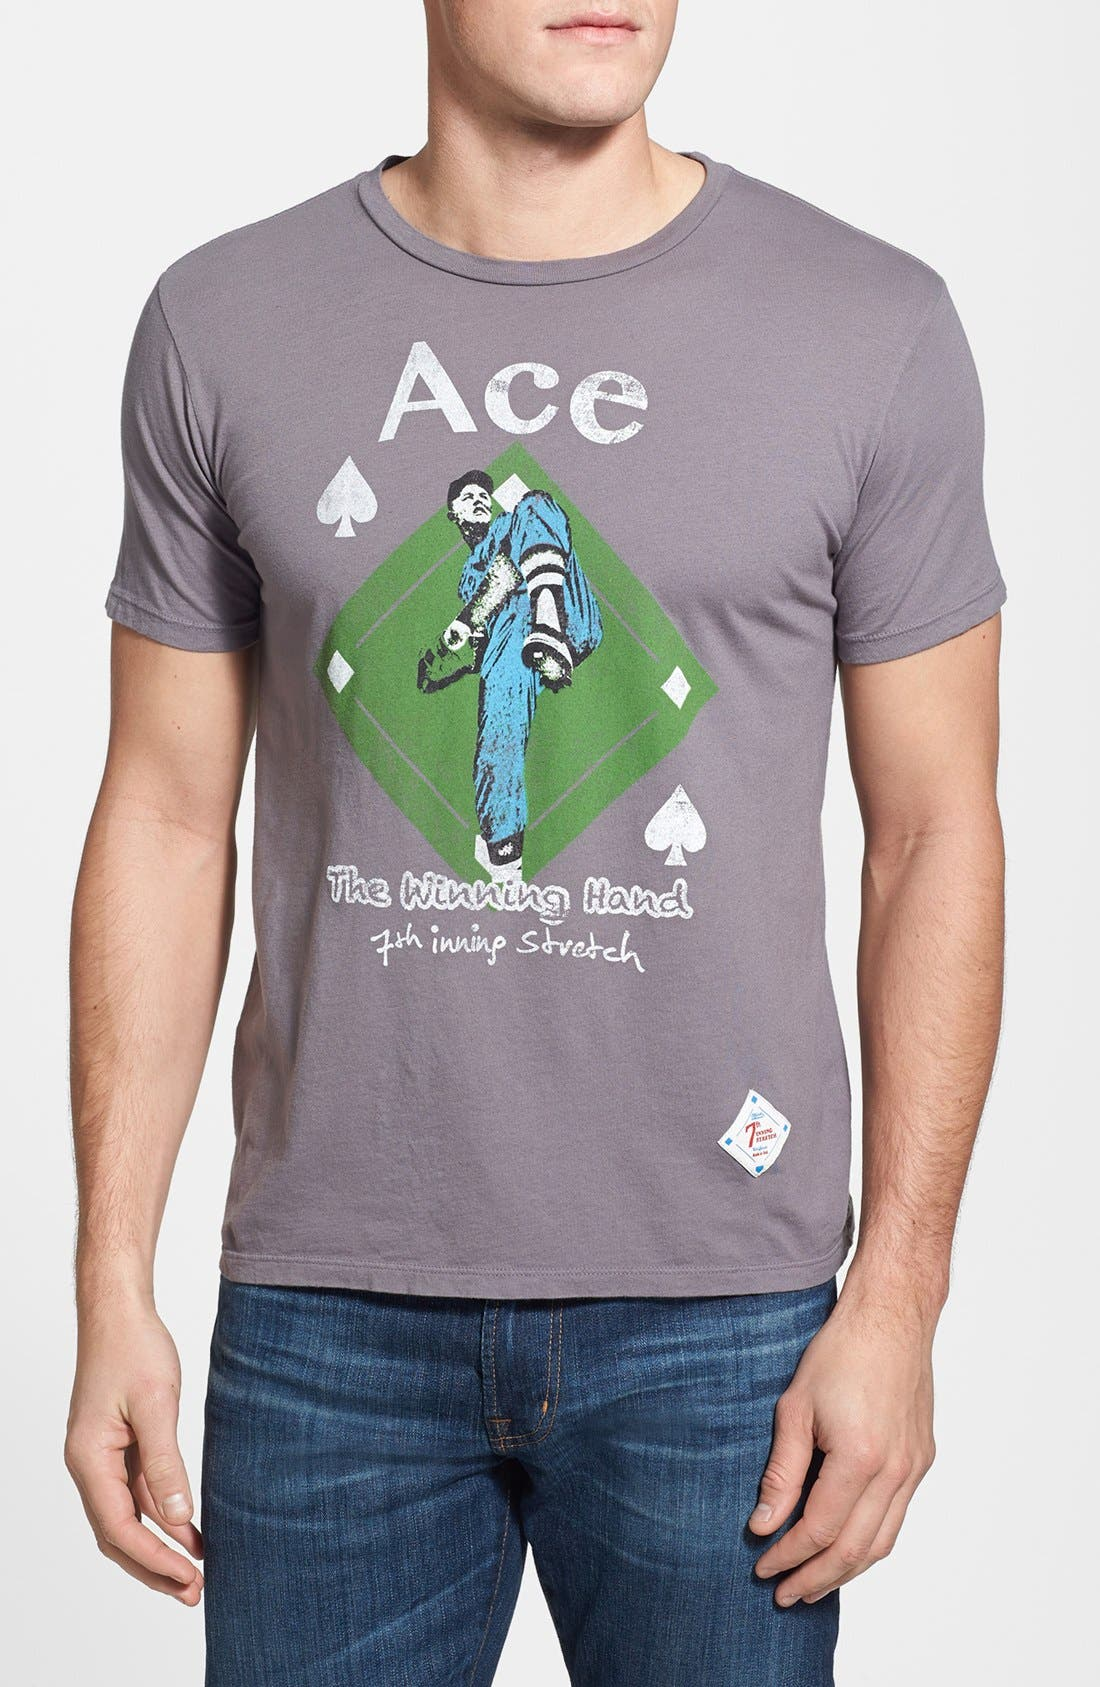 7th Inning Stretch 'Ace' Slim Fit T-Shirt